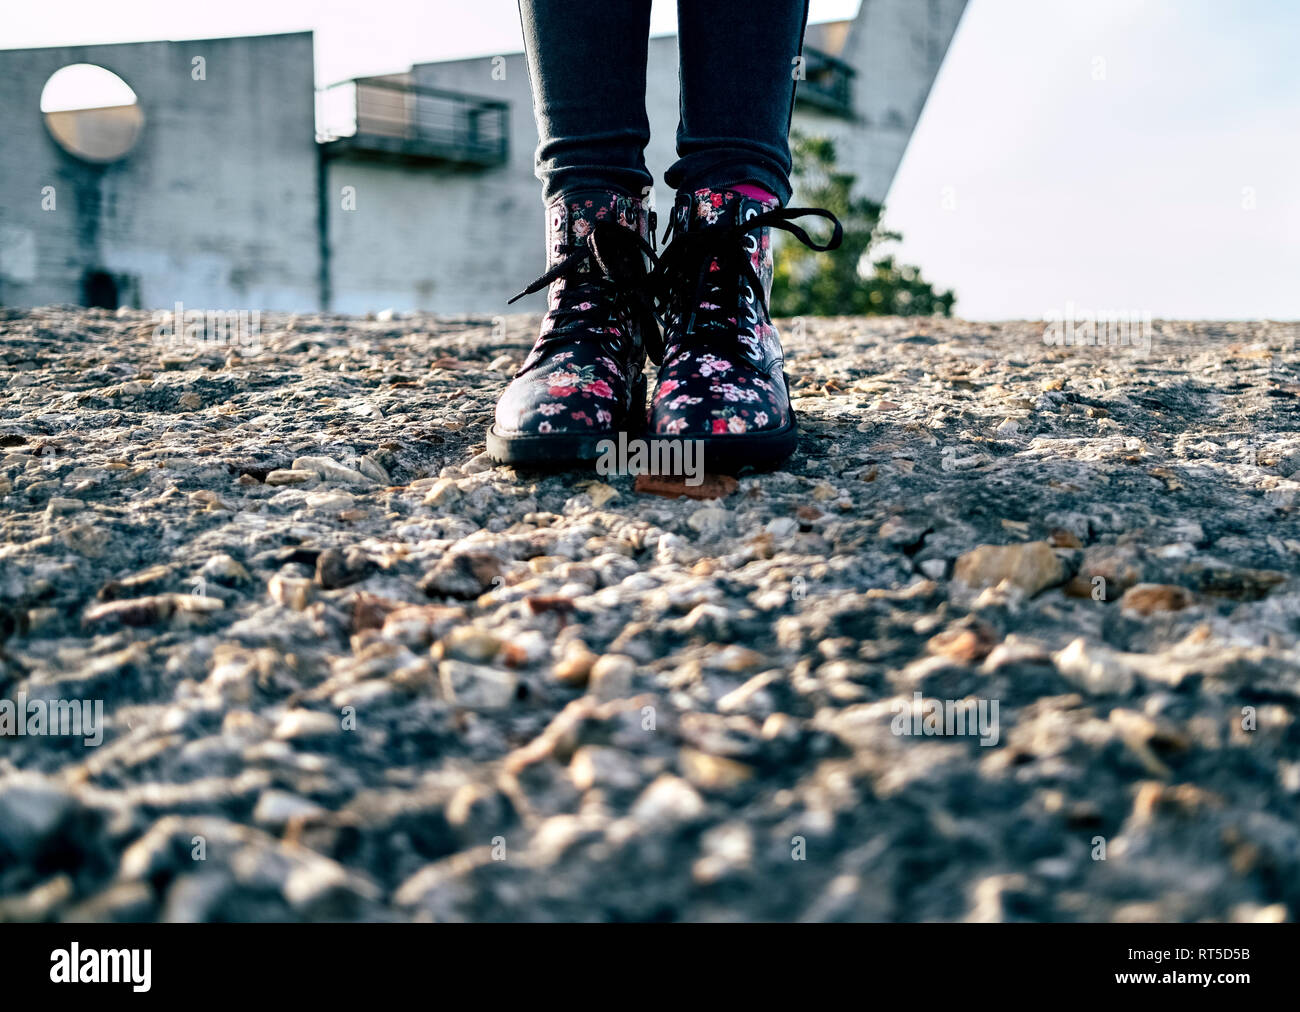 Girl wearing boots with floral design - Stock Image